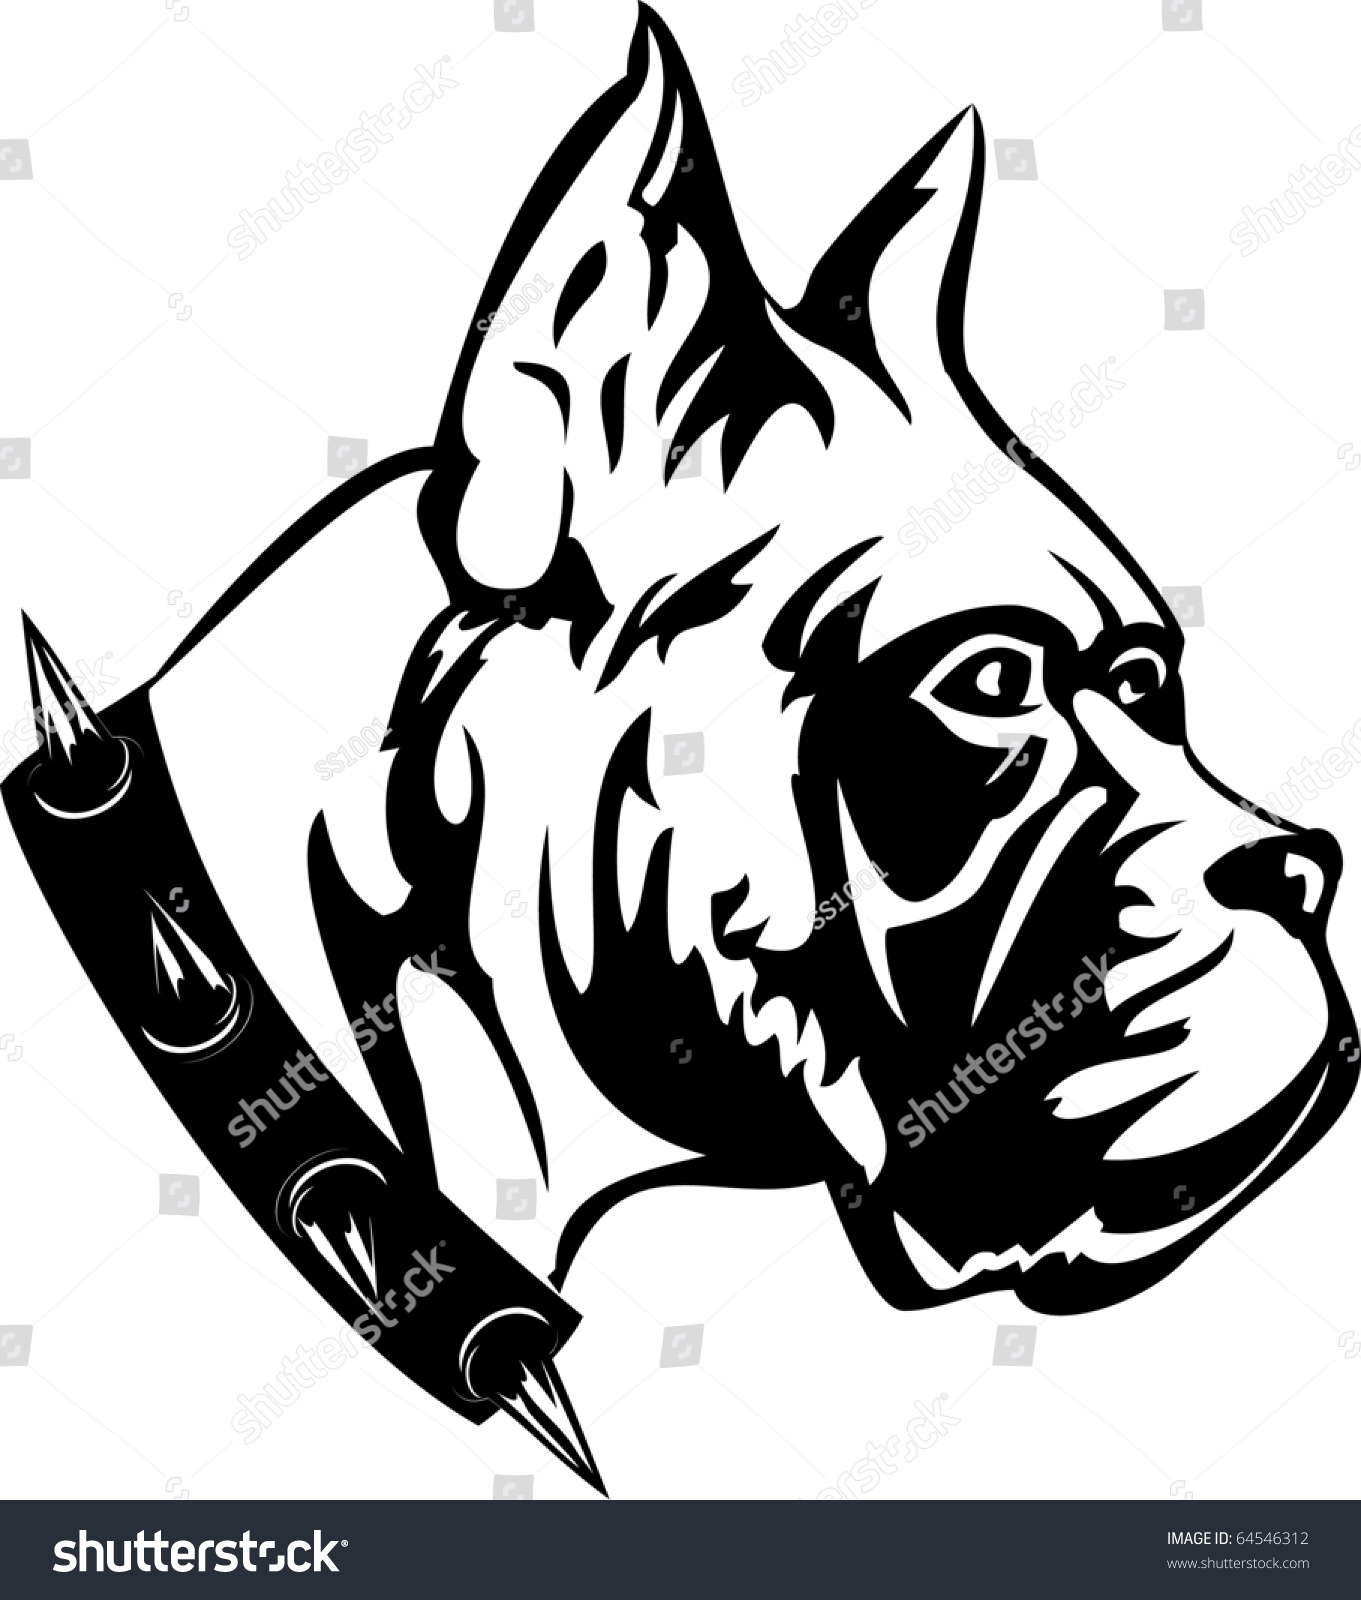 the vector black and white image of dog of breed boxer